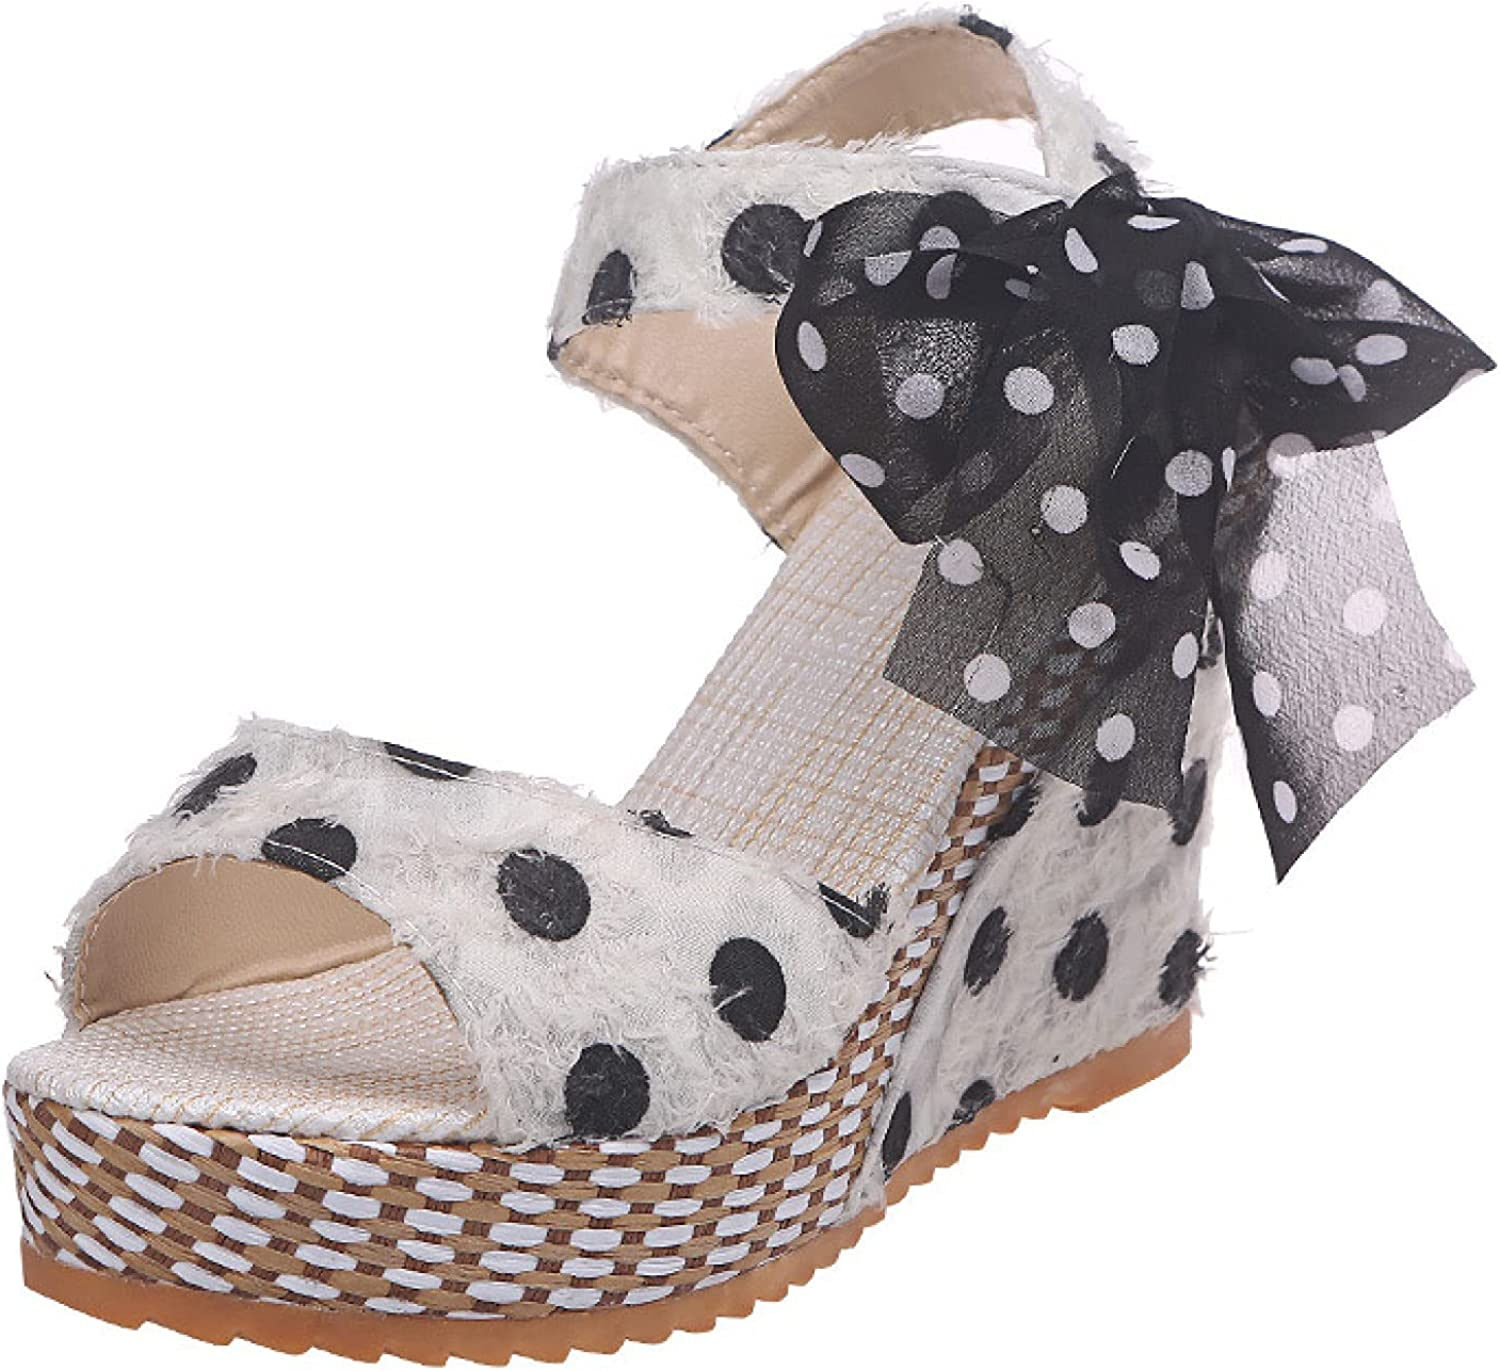 Women's Wedge Sandals Peep All items free shipping Toe Direct sale of manufacturer Chunky Strappy Polka Dots Bowknot